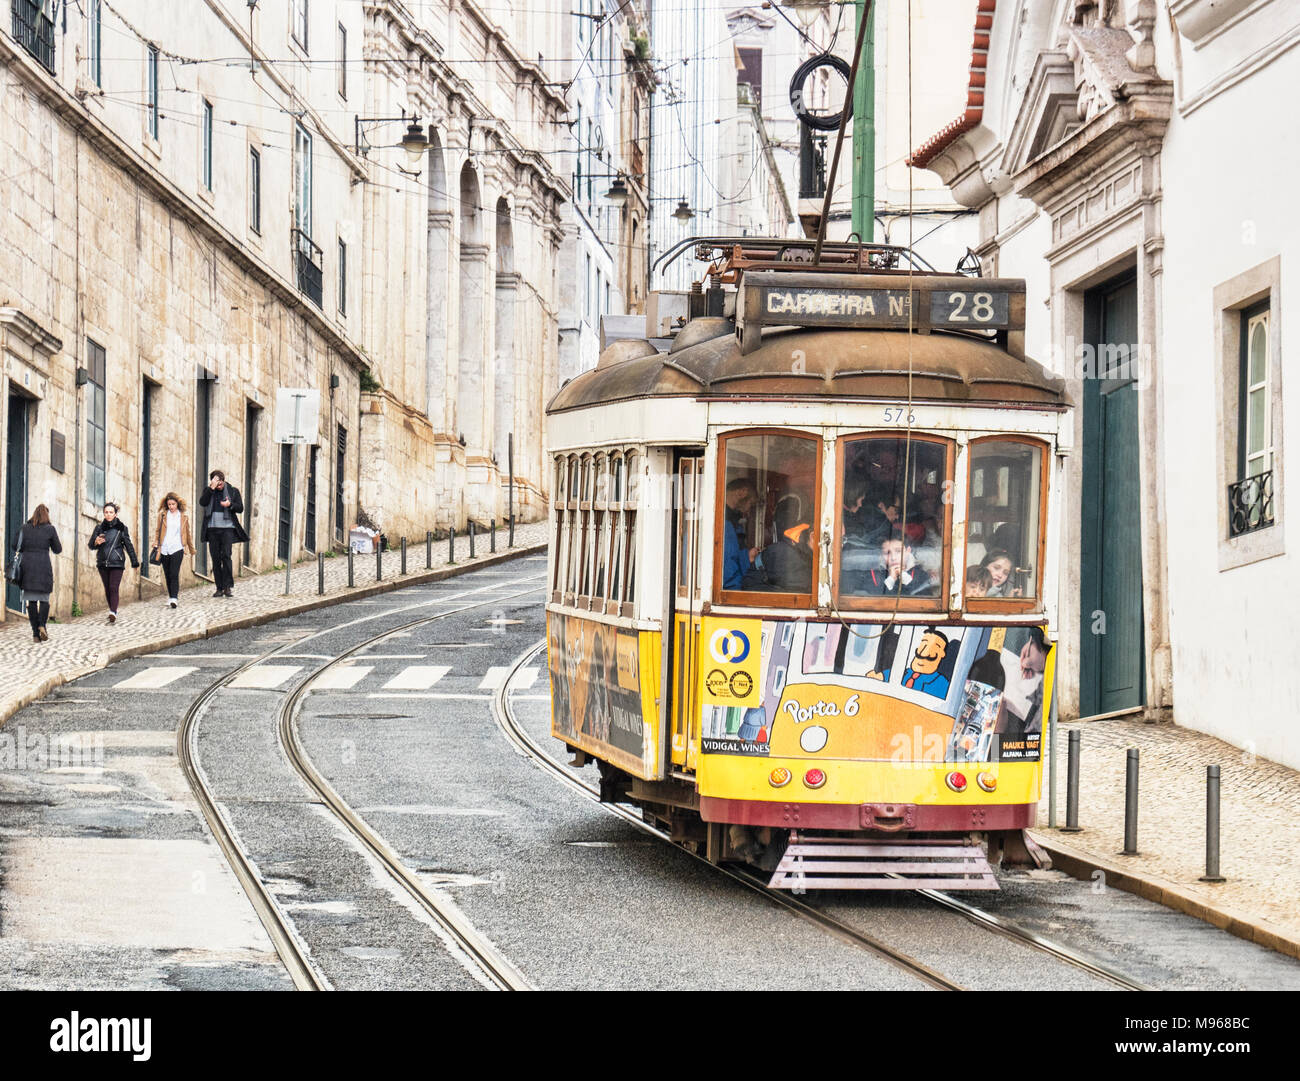 6 March 2018: Famous tourist attraction, tram 28, on its route in the Old Town. - Stock Image